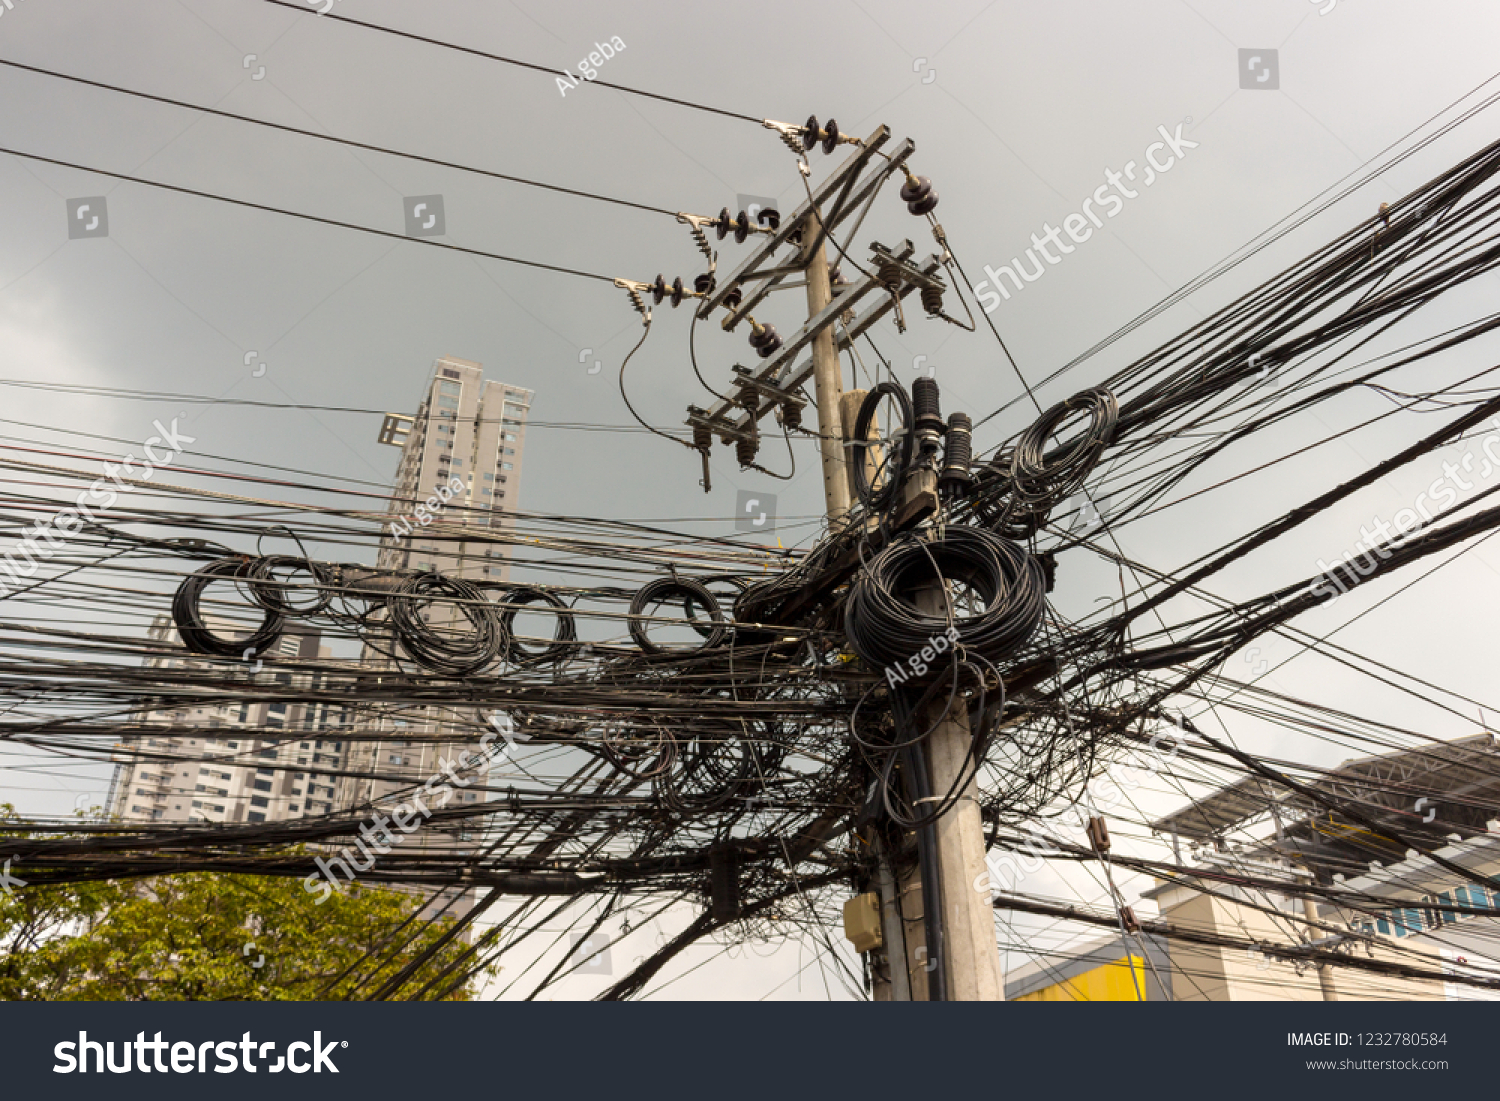 hight resolution of industrial background of messy electrical wires and insulators on the concrete pillar disorderly connection of